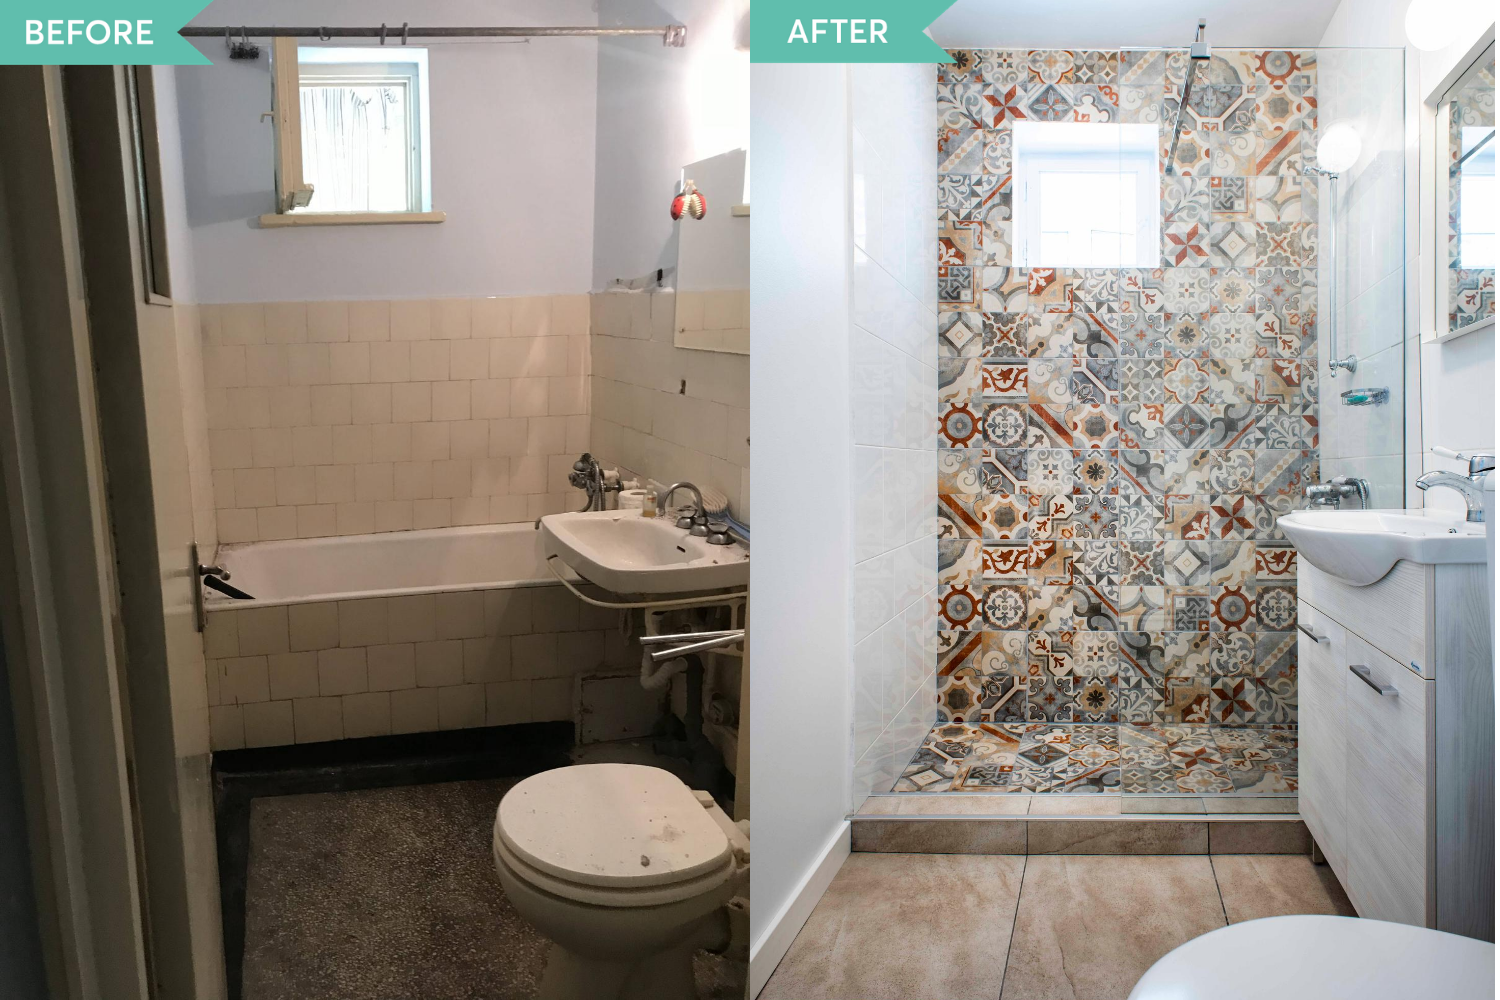 Before and After baie faianta patchwork apartament Militari - Diez Office